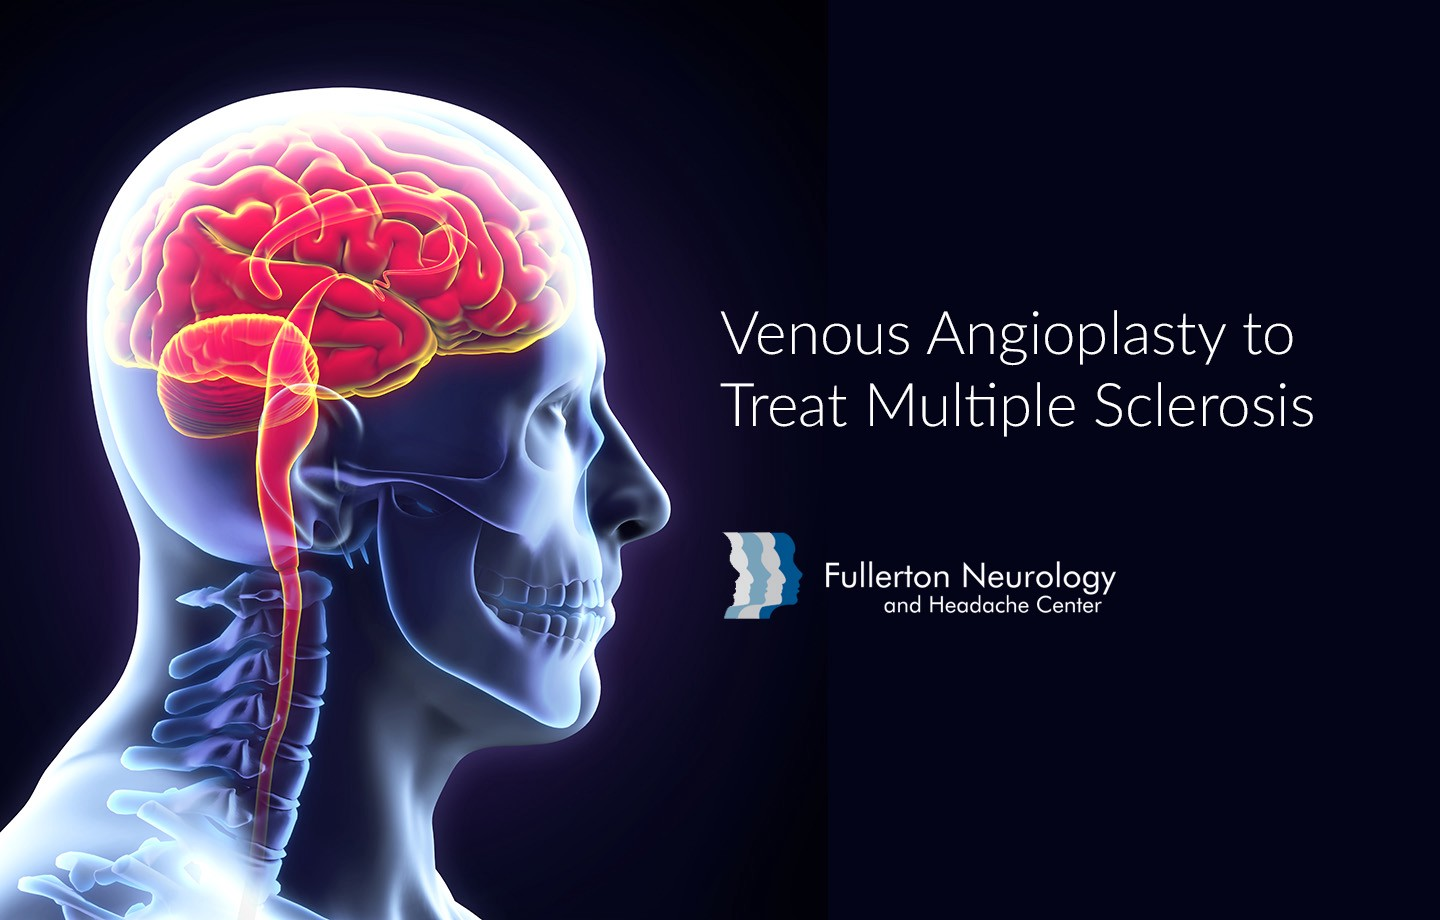 Ancient History — Venous Angioplasty to Treat Multiple Sclerosis